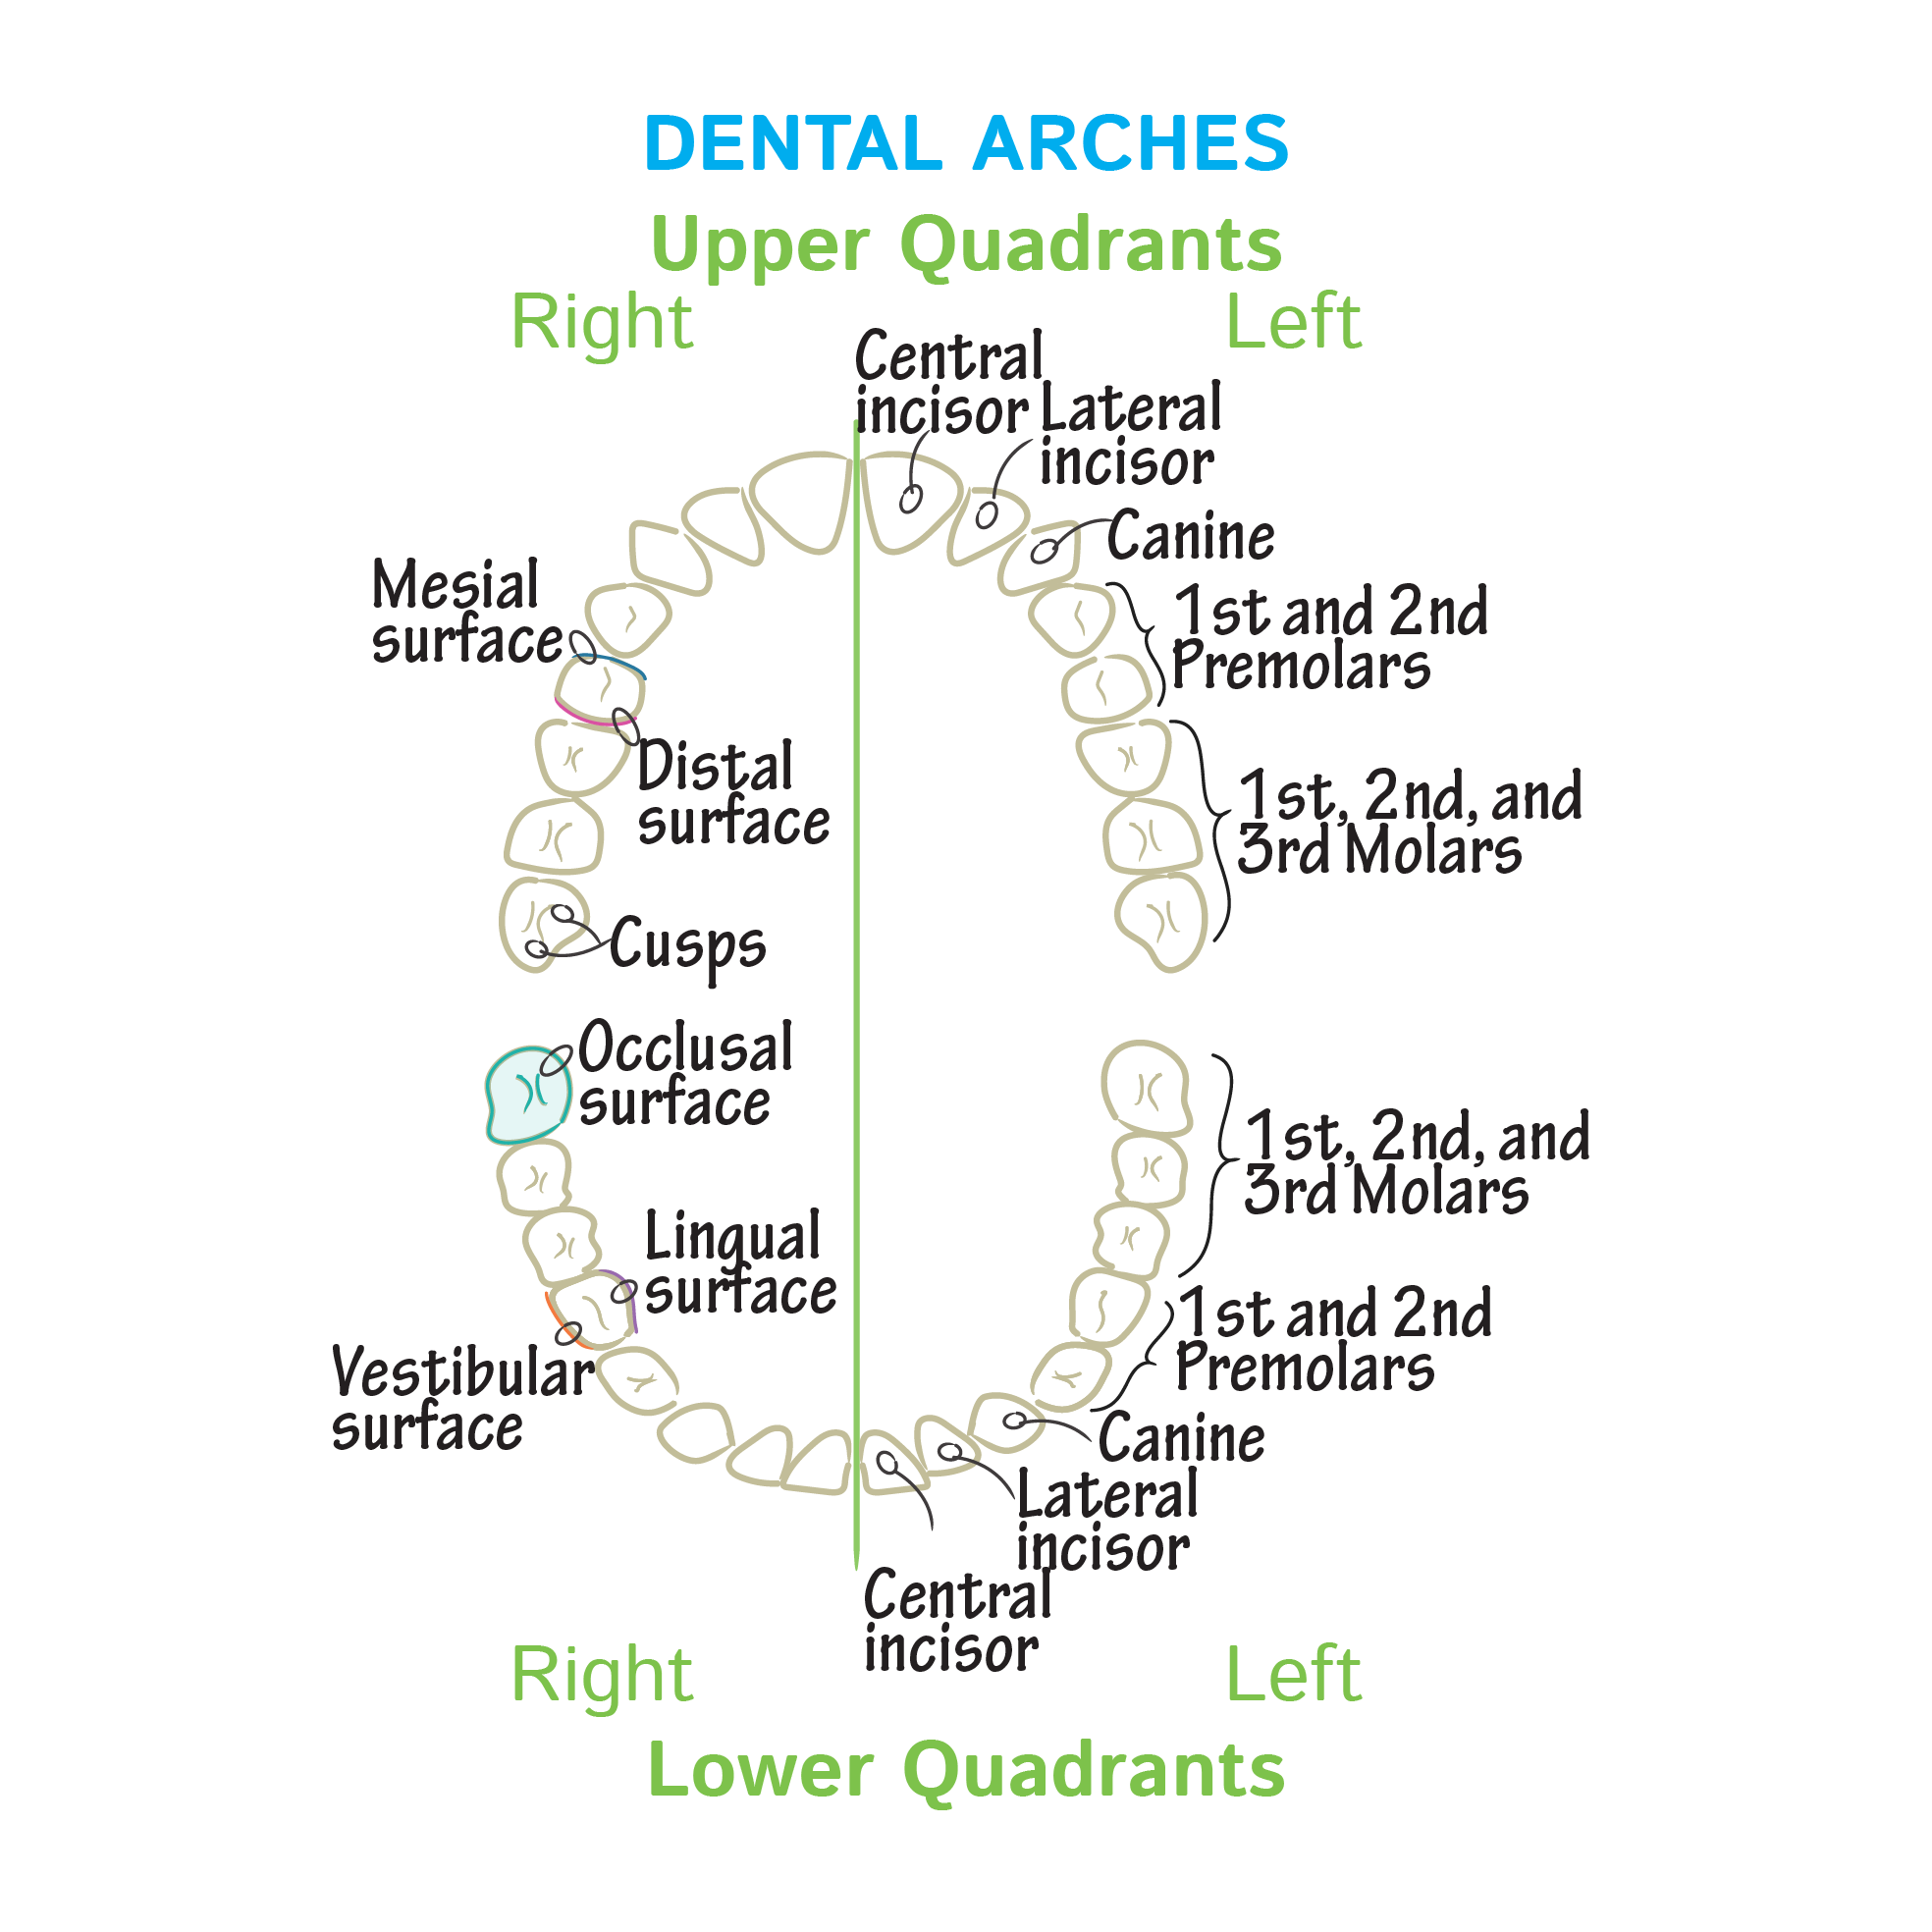 Gross Anatomy Glossary: Dental Arches | Draw It to Know It